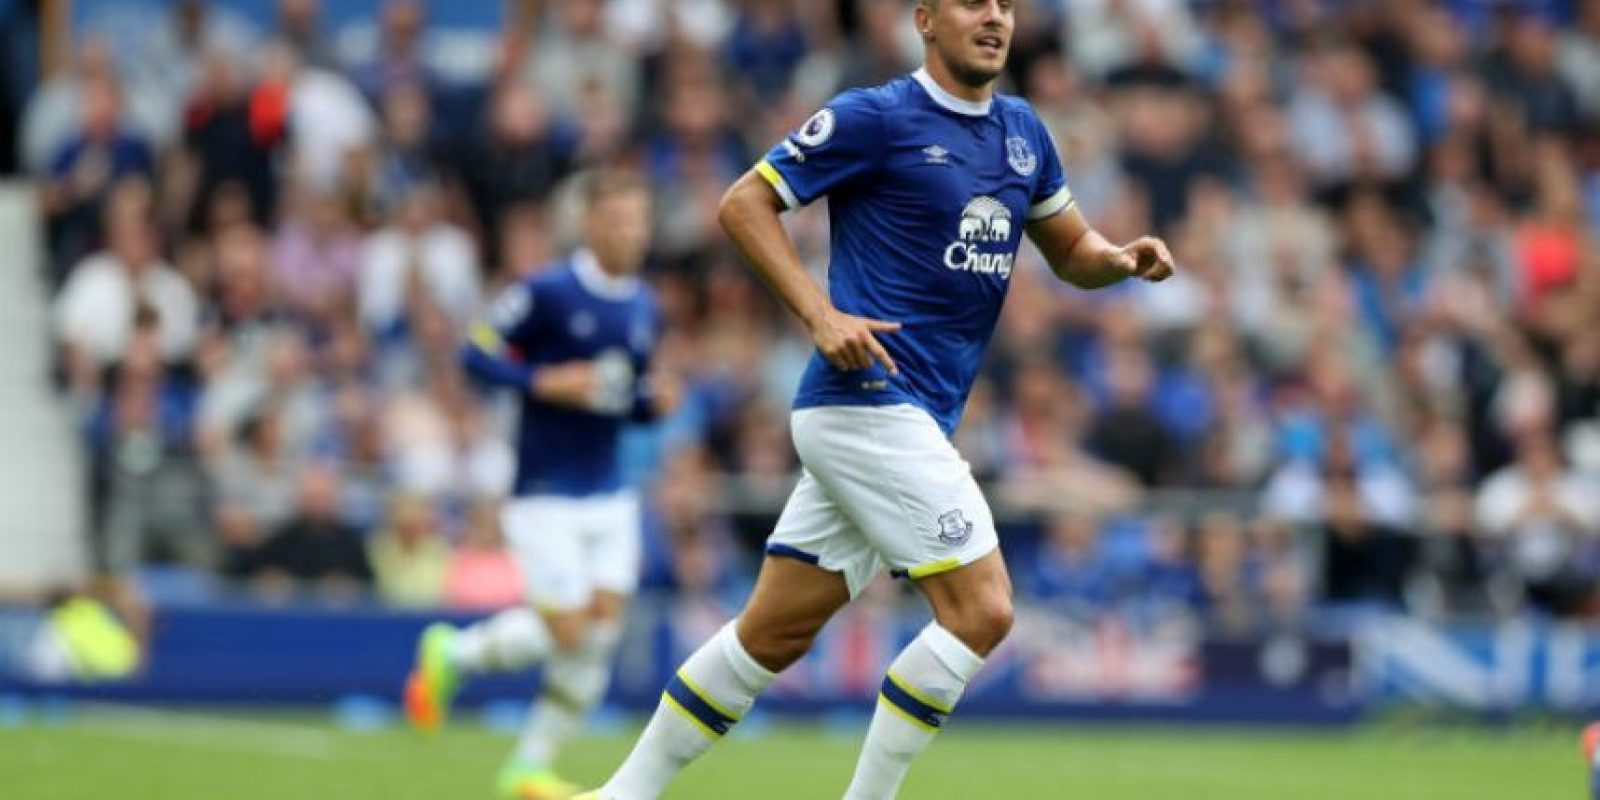 Phil Jagielka (Everton / Inglaterra) Foto: Getty Images